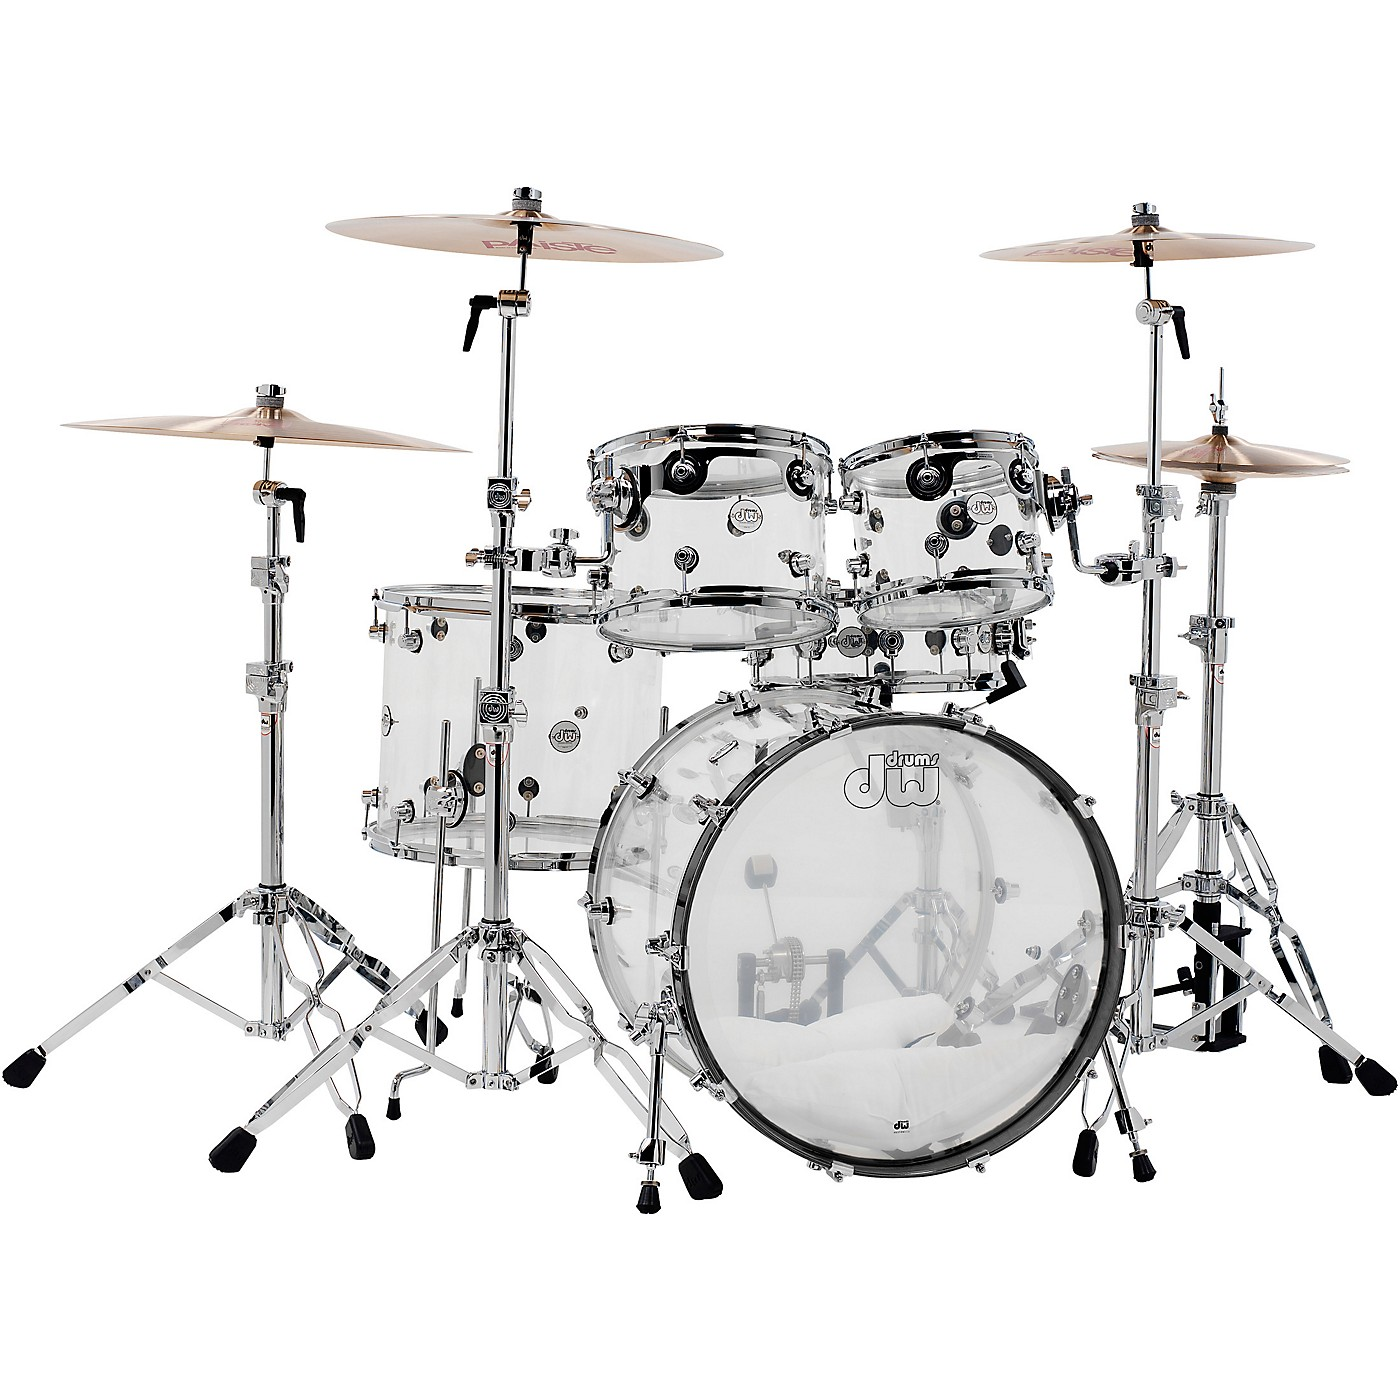 DW Design Series Acrylic 5-Piece Shell Pack with Chrome Hardware thumbnail